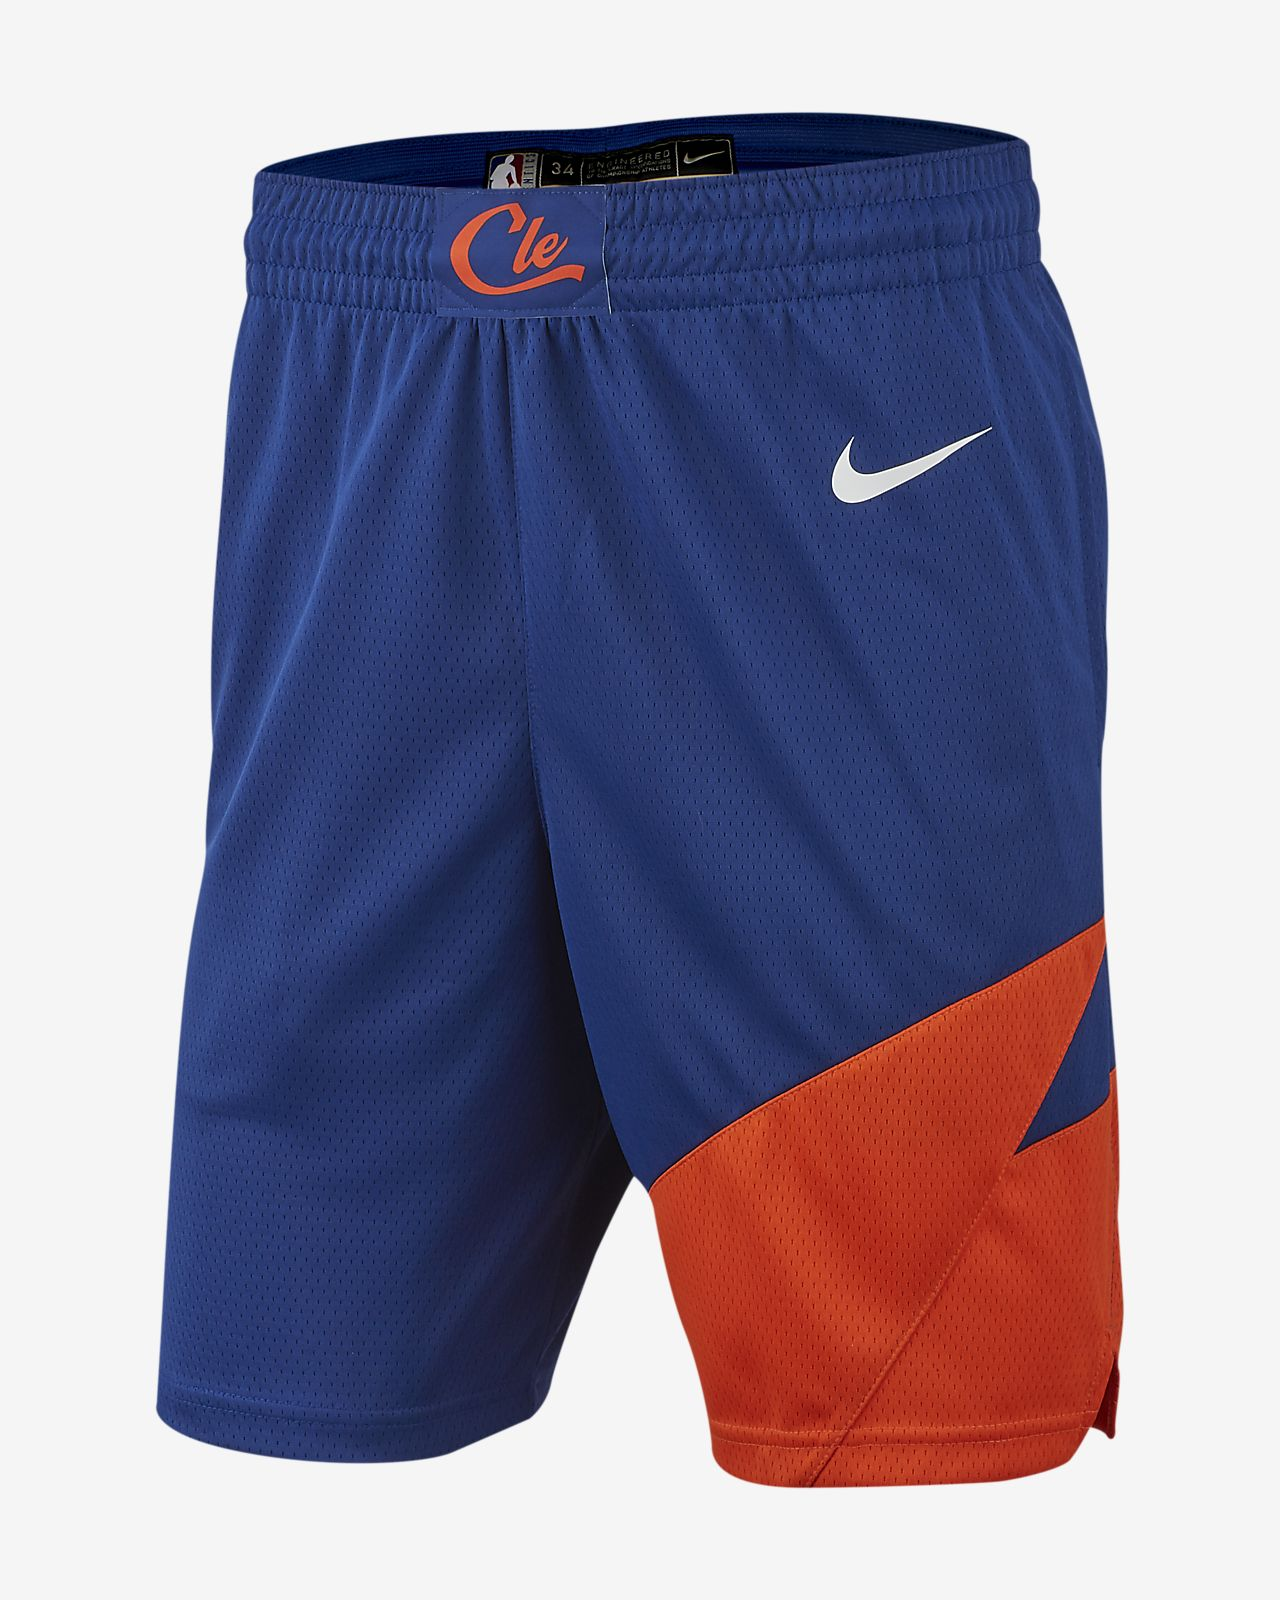 Cleveland Cavaliers City Edition Swingman Nike NBA-herenshorts